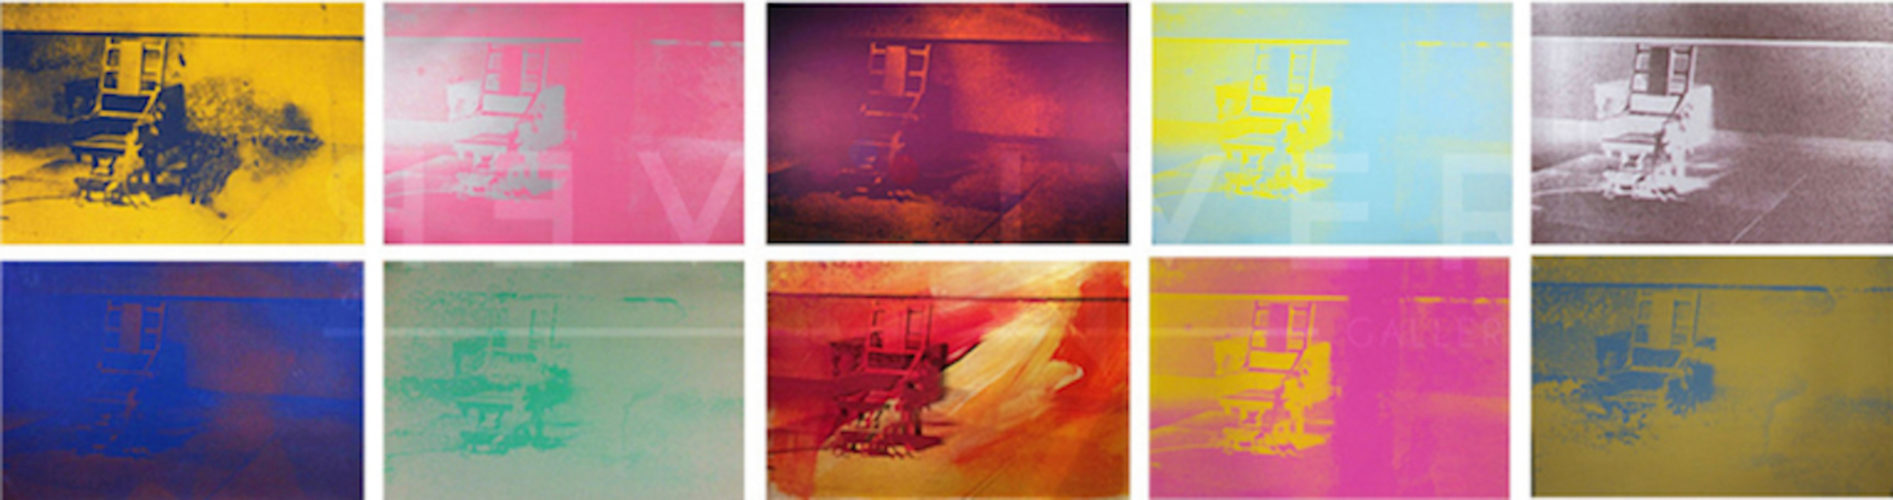 Electric Chair Complete Portfolio by Andy Warhol